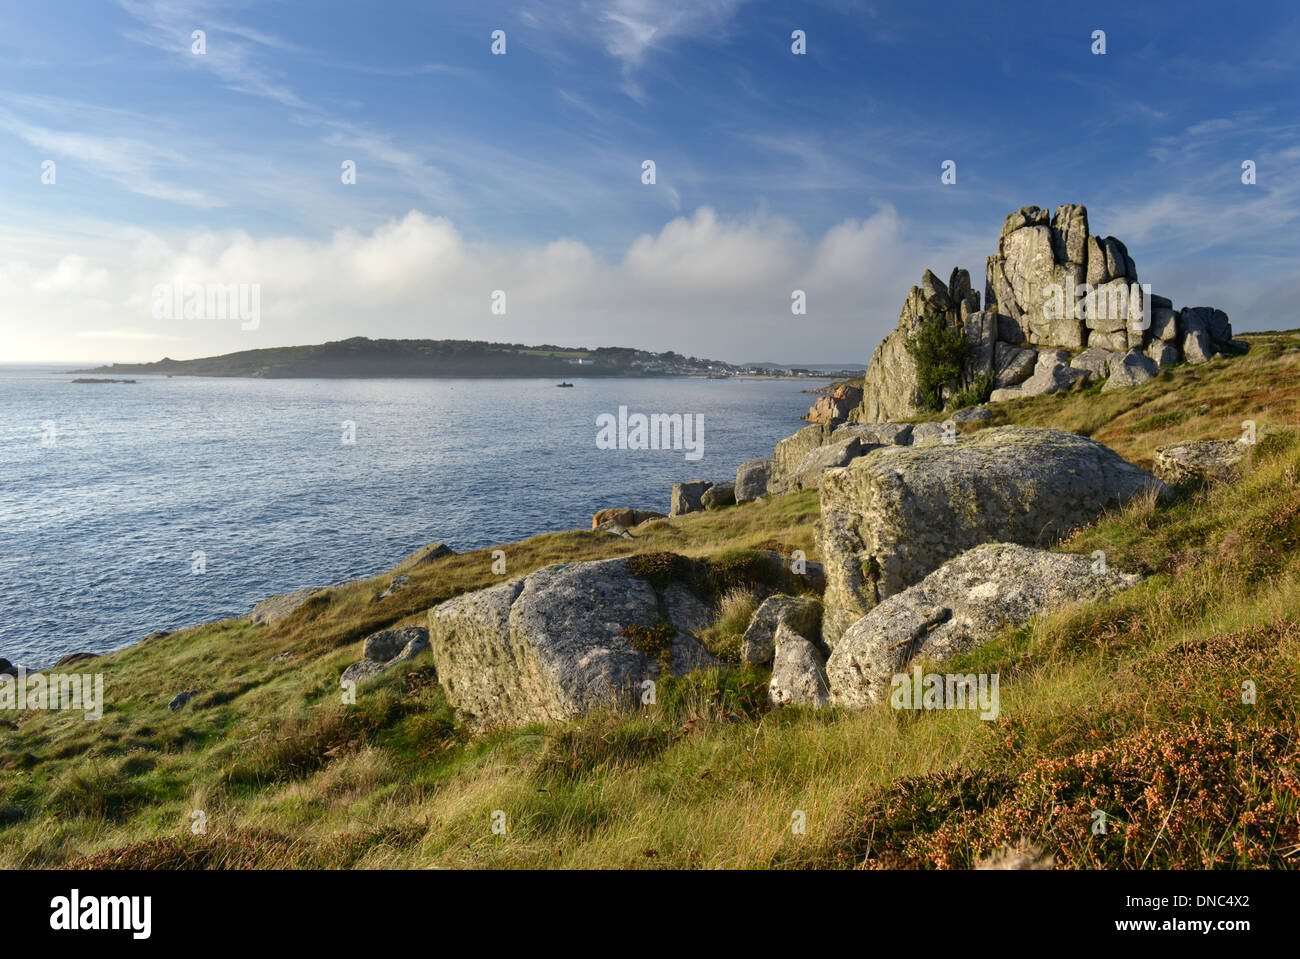 Looking toward Hugh Town, Porthcressa Beach and The Garrison from the coastal path near Peninnis, St Mary's, Isles of Scilly - Stock Image